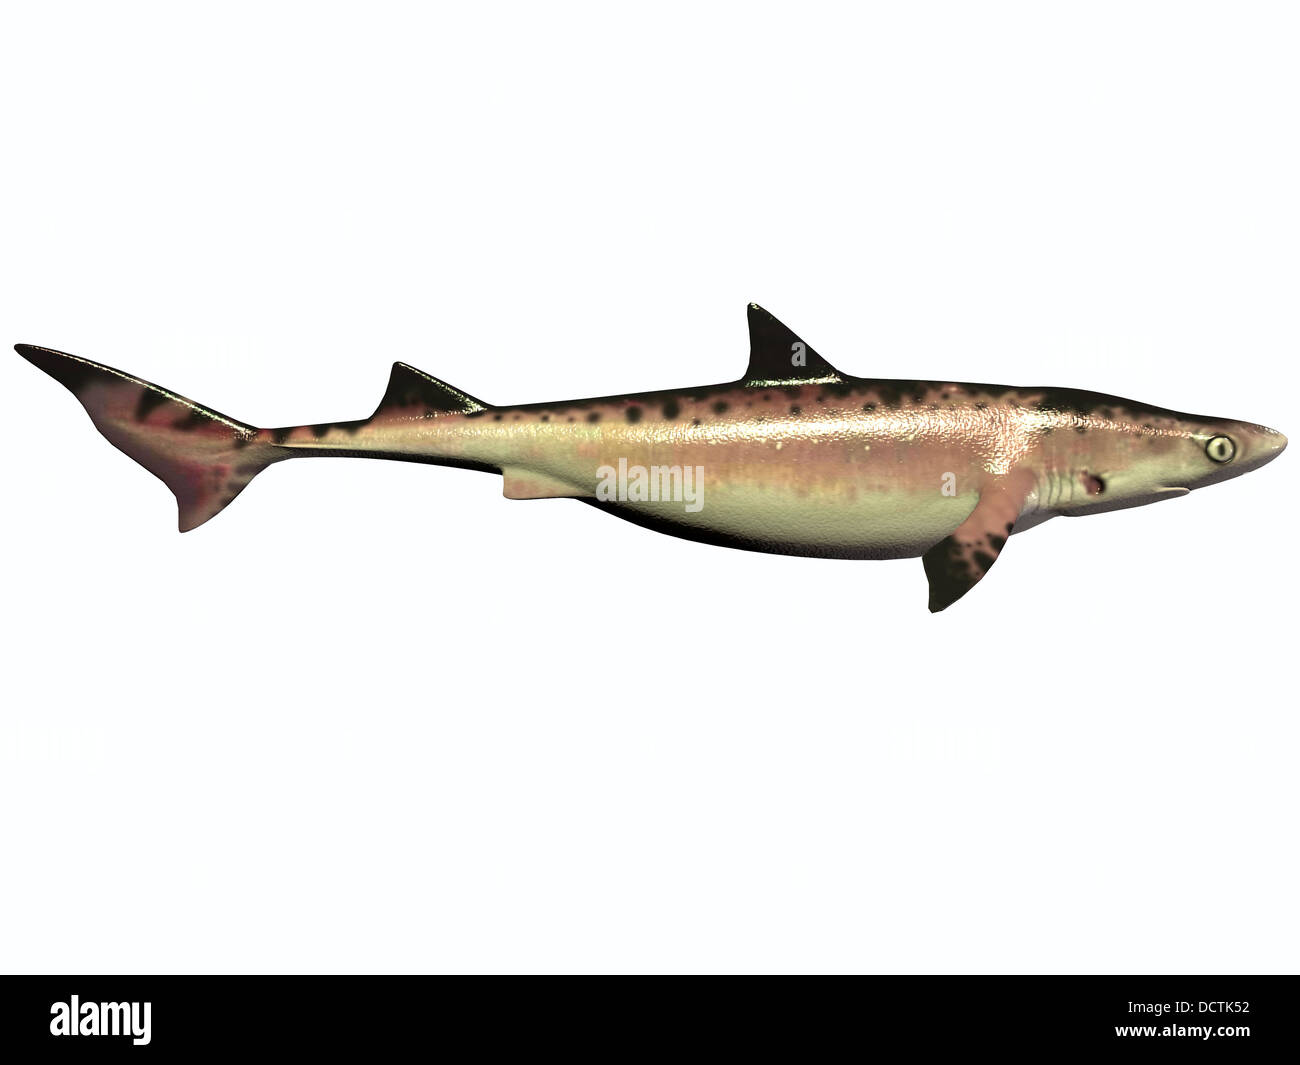 There were numerous species of shark during the Cretaceous Period of Earth's history which are now extinct. - Stock Image